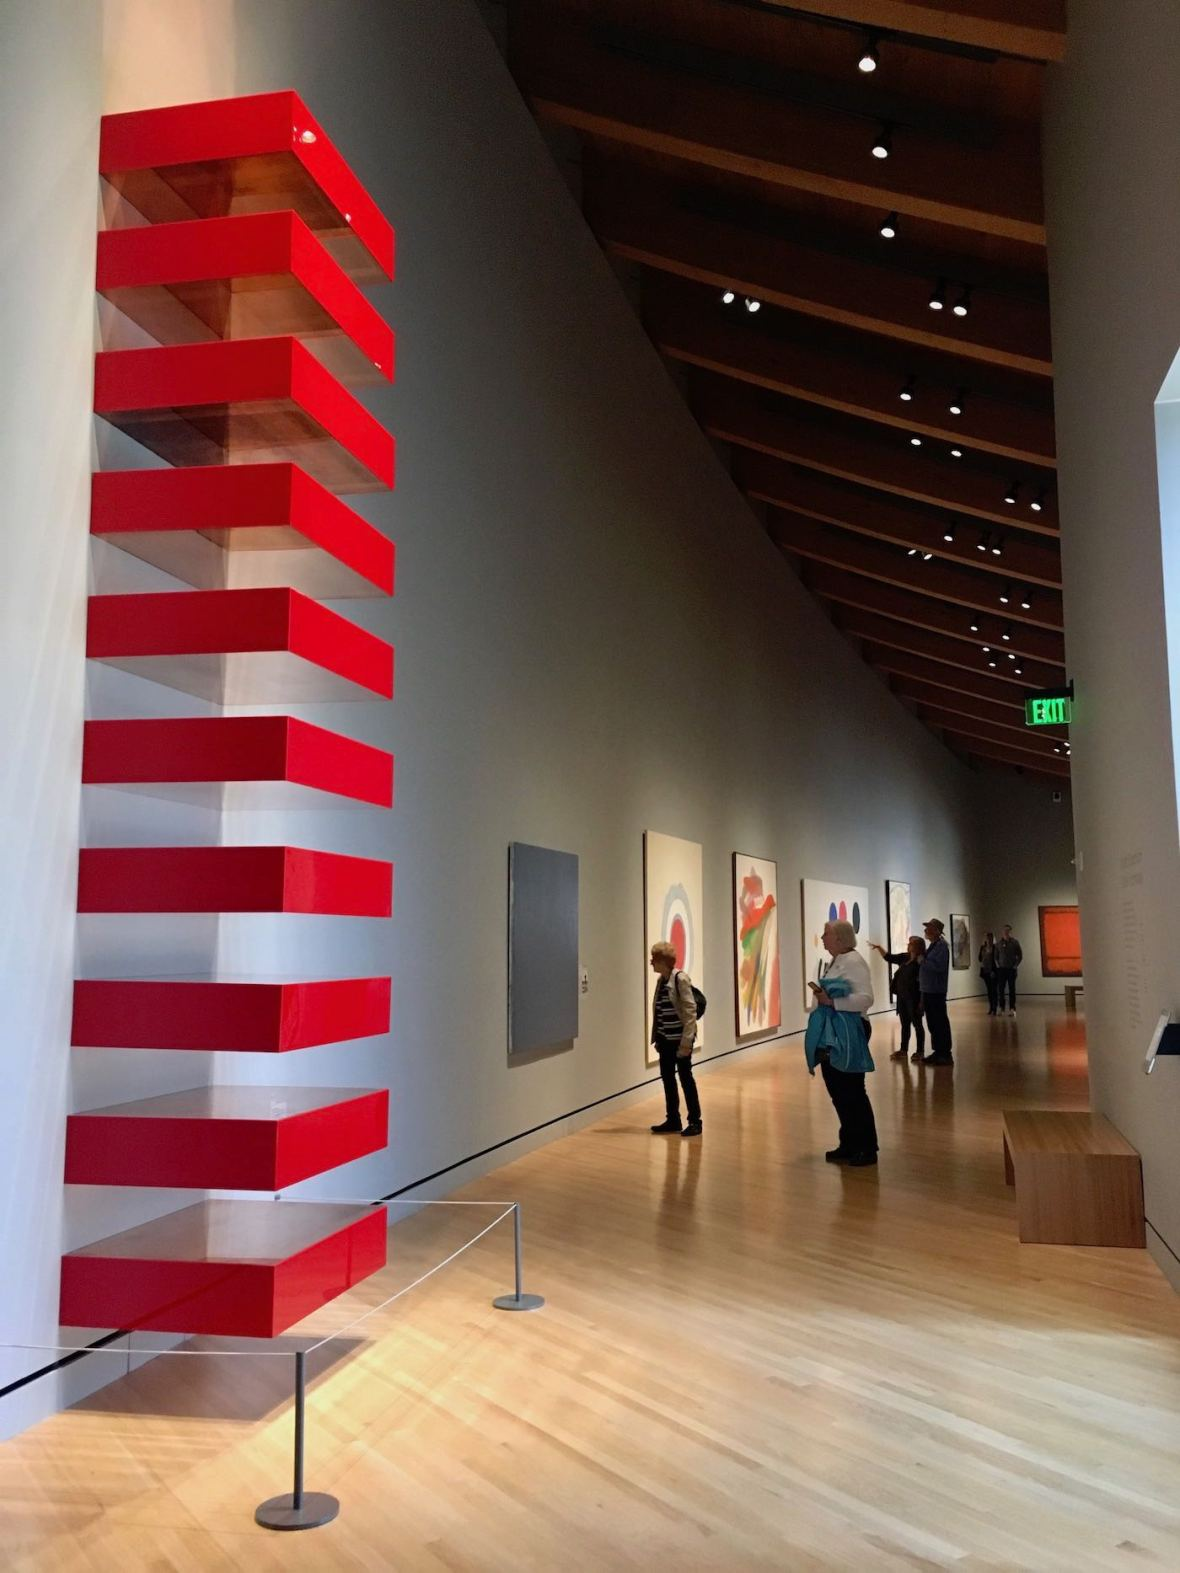 Mid Century works at Crystal Bridges Museum of American Art